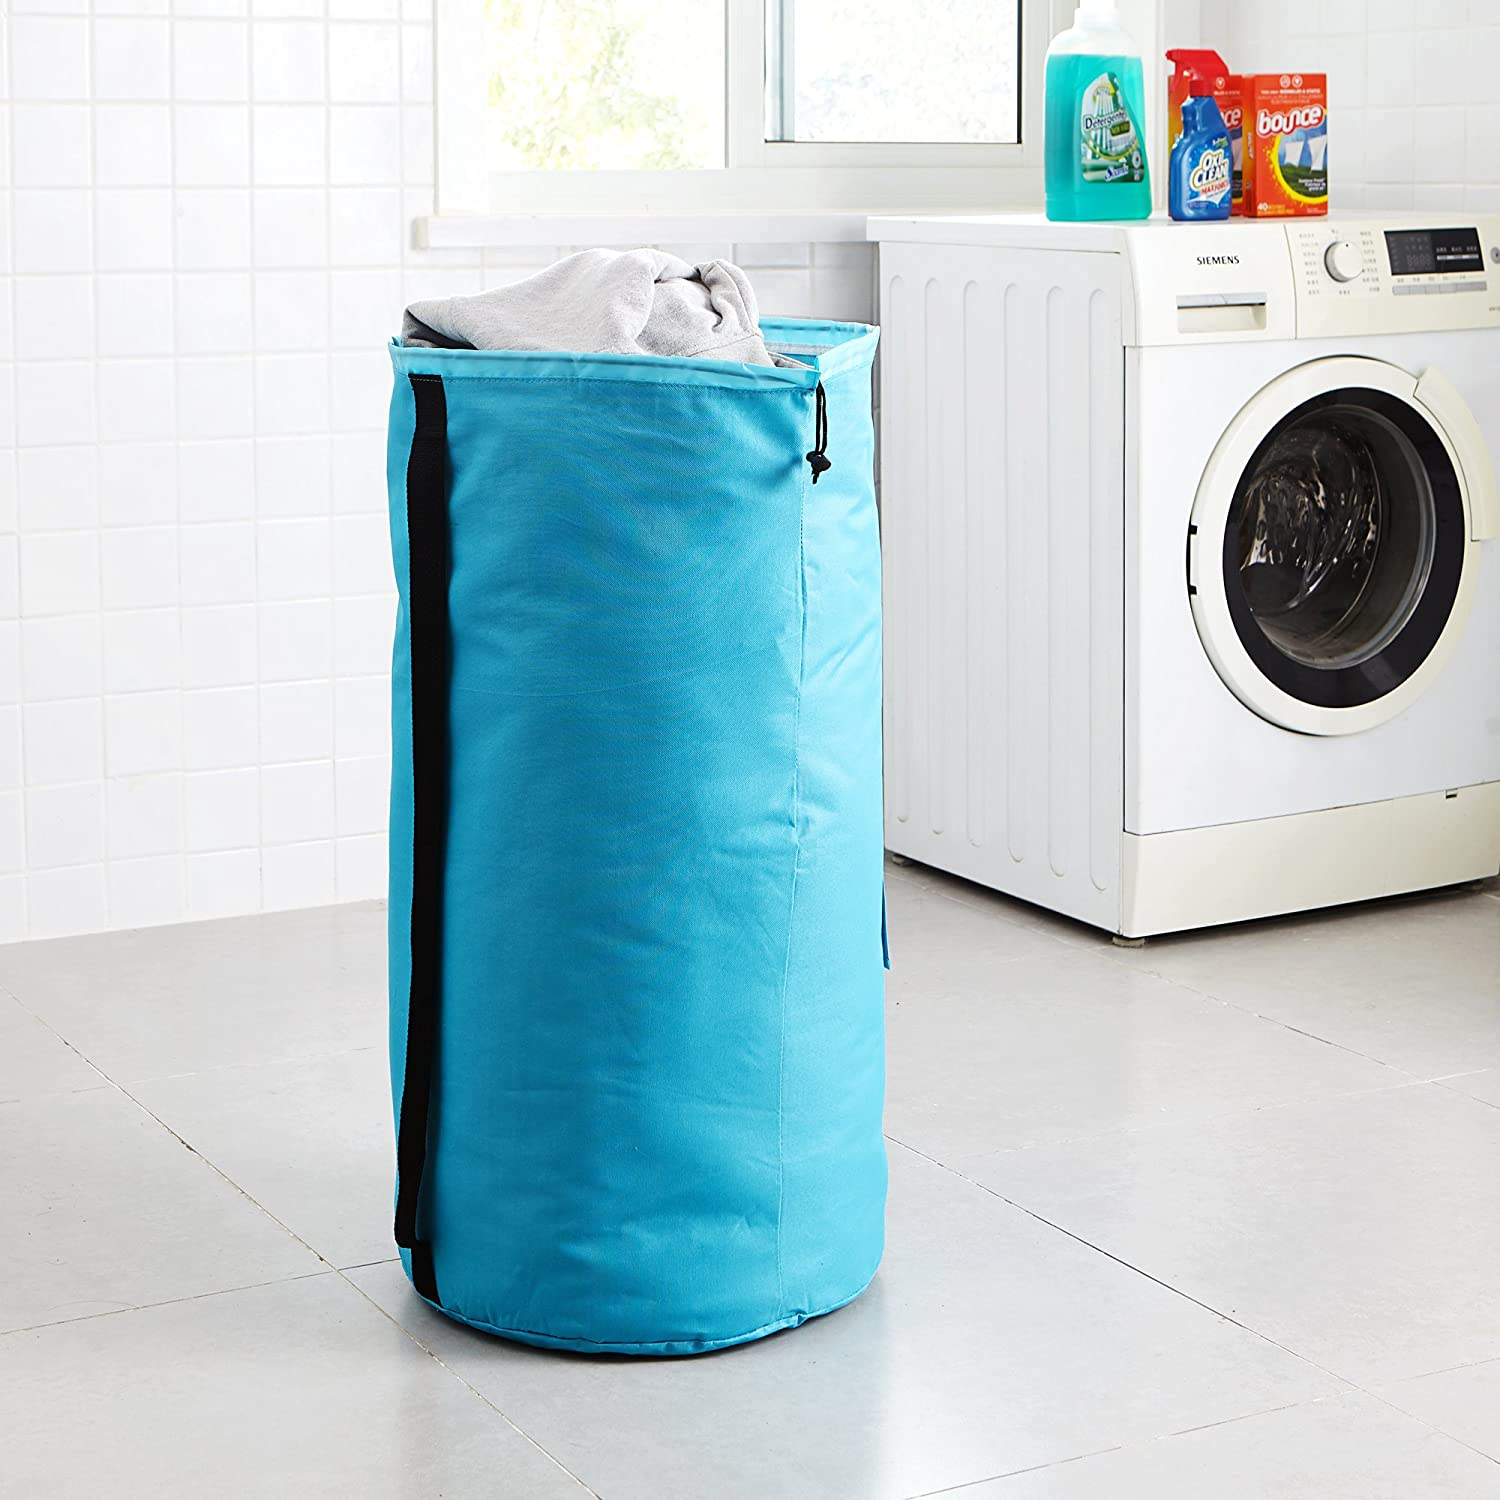 DormCo Laundry Backpack - TUSK College Storage - Aqua